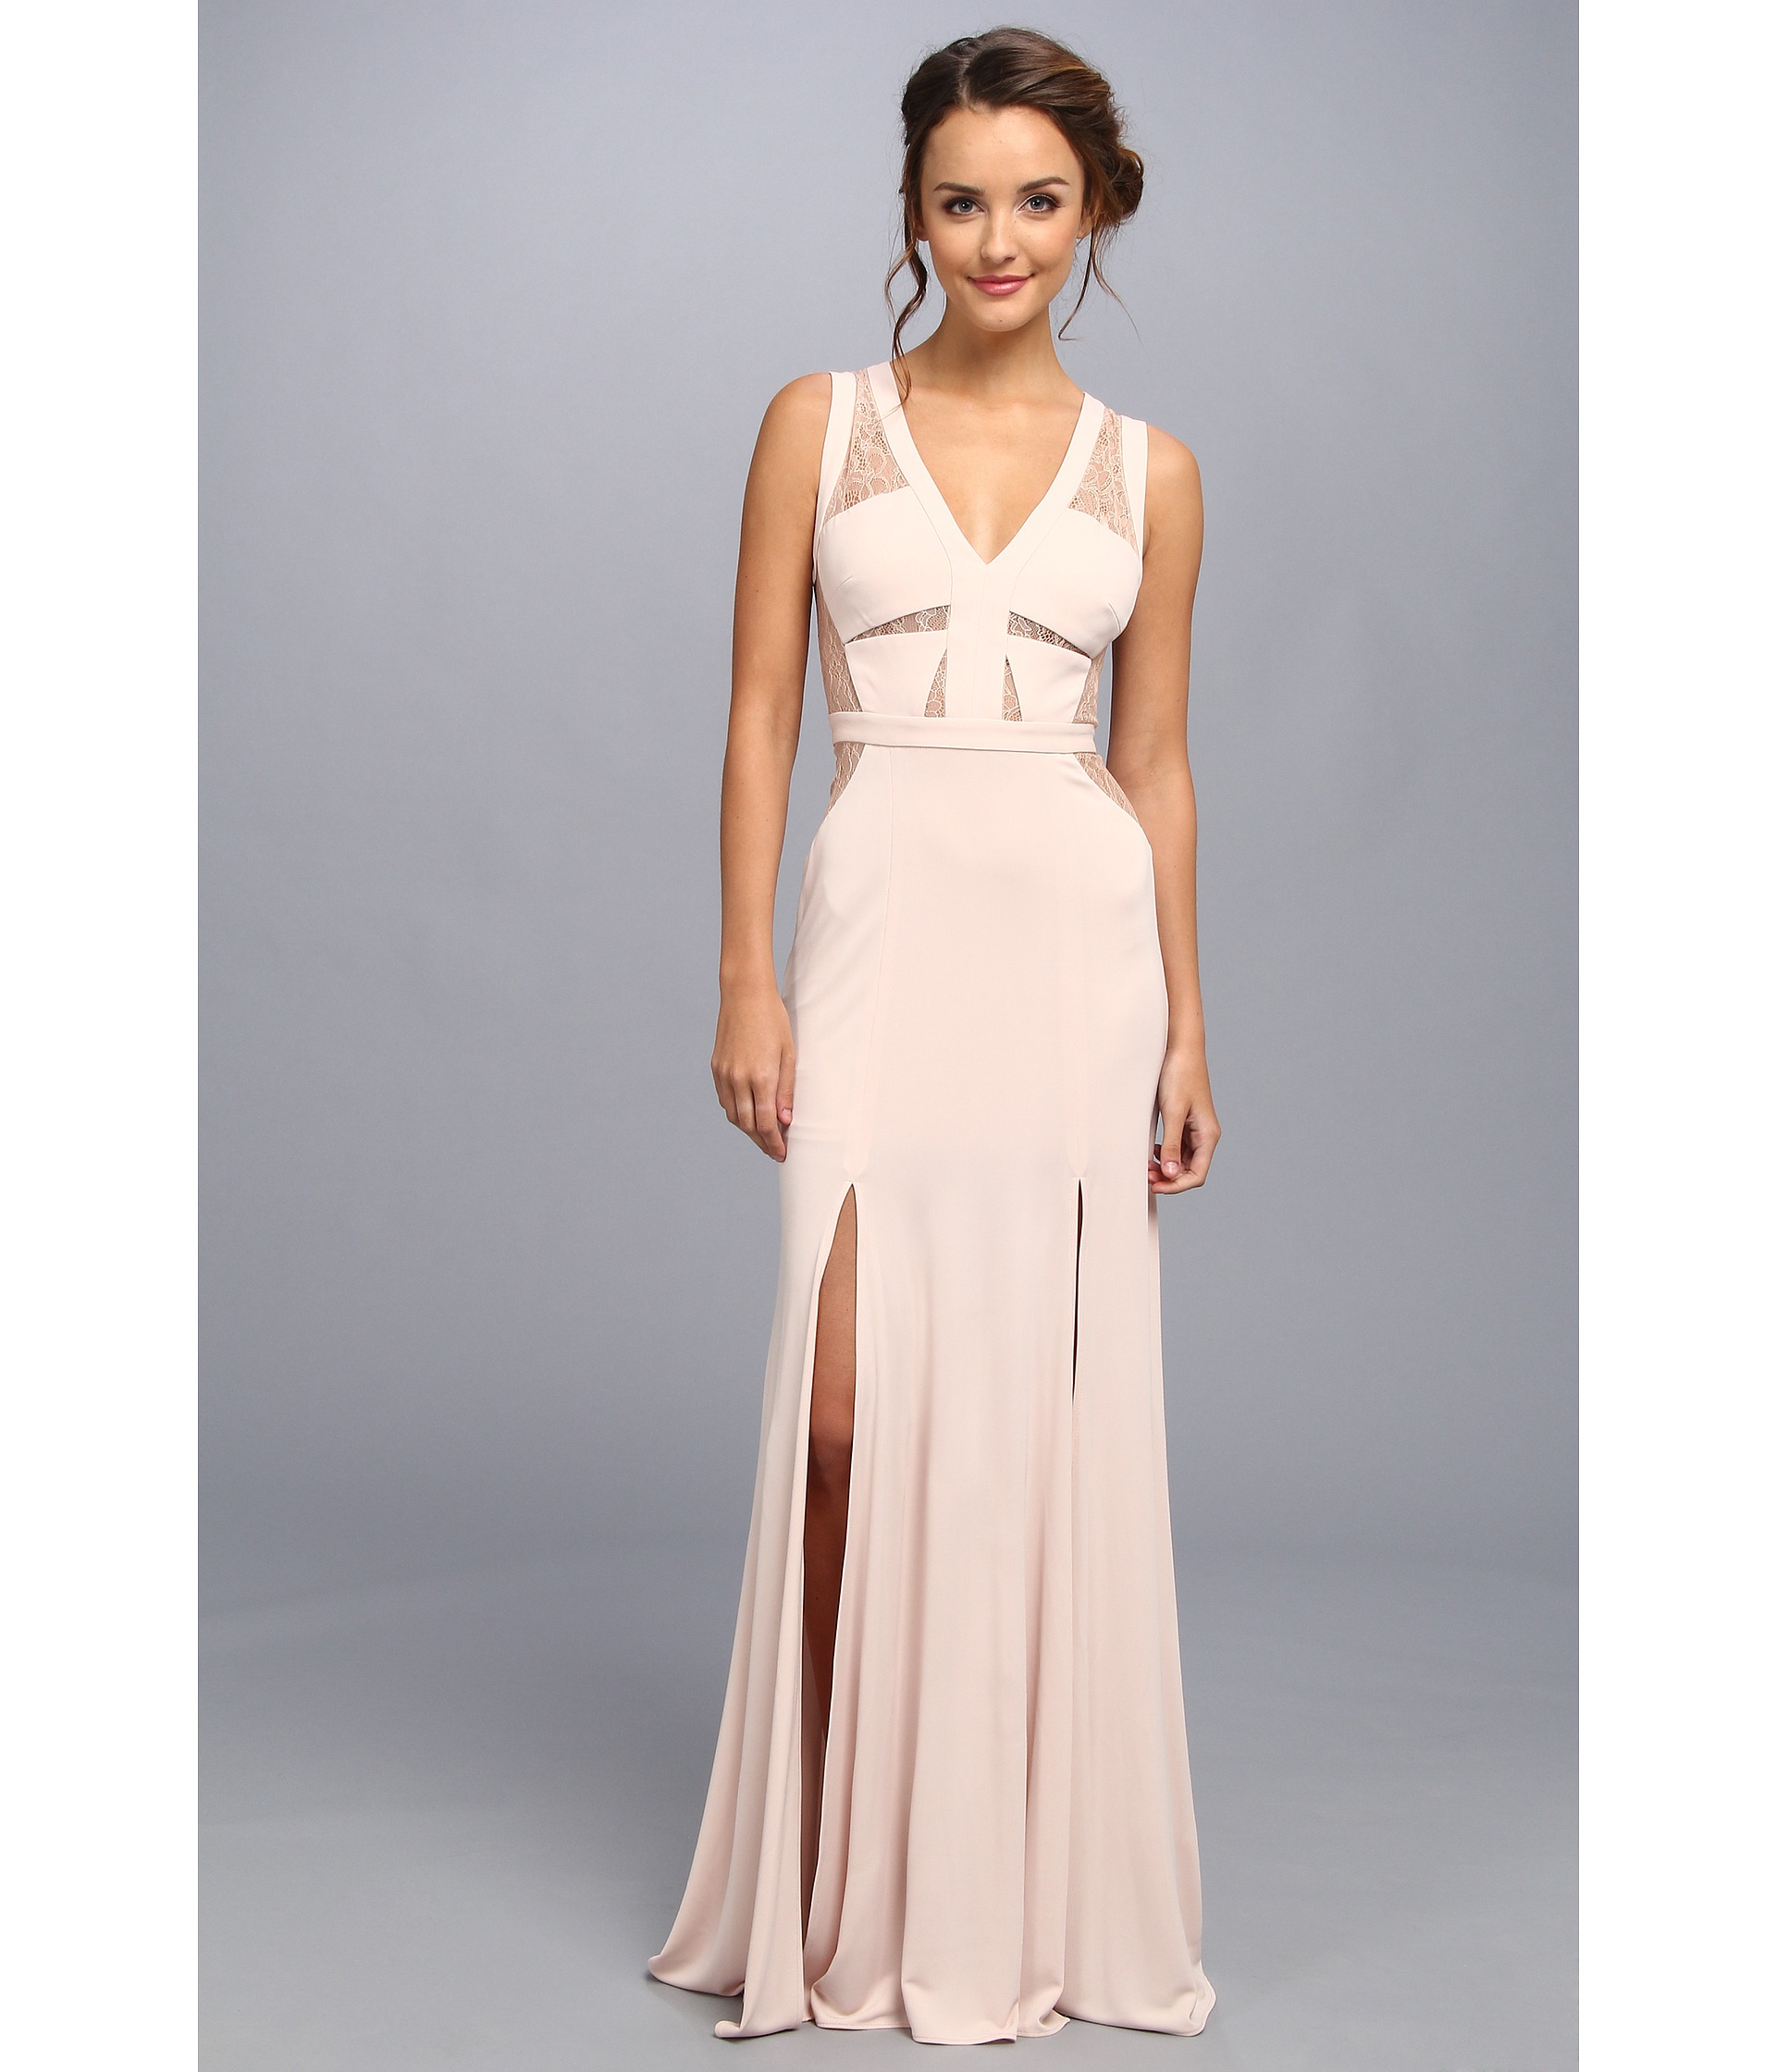 Lyst - Bcbgmaxazria Cristy Lace Sleeveless Gown in Pink